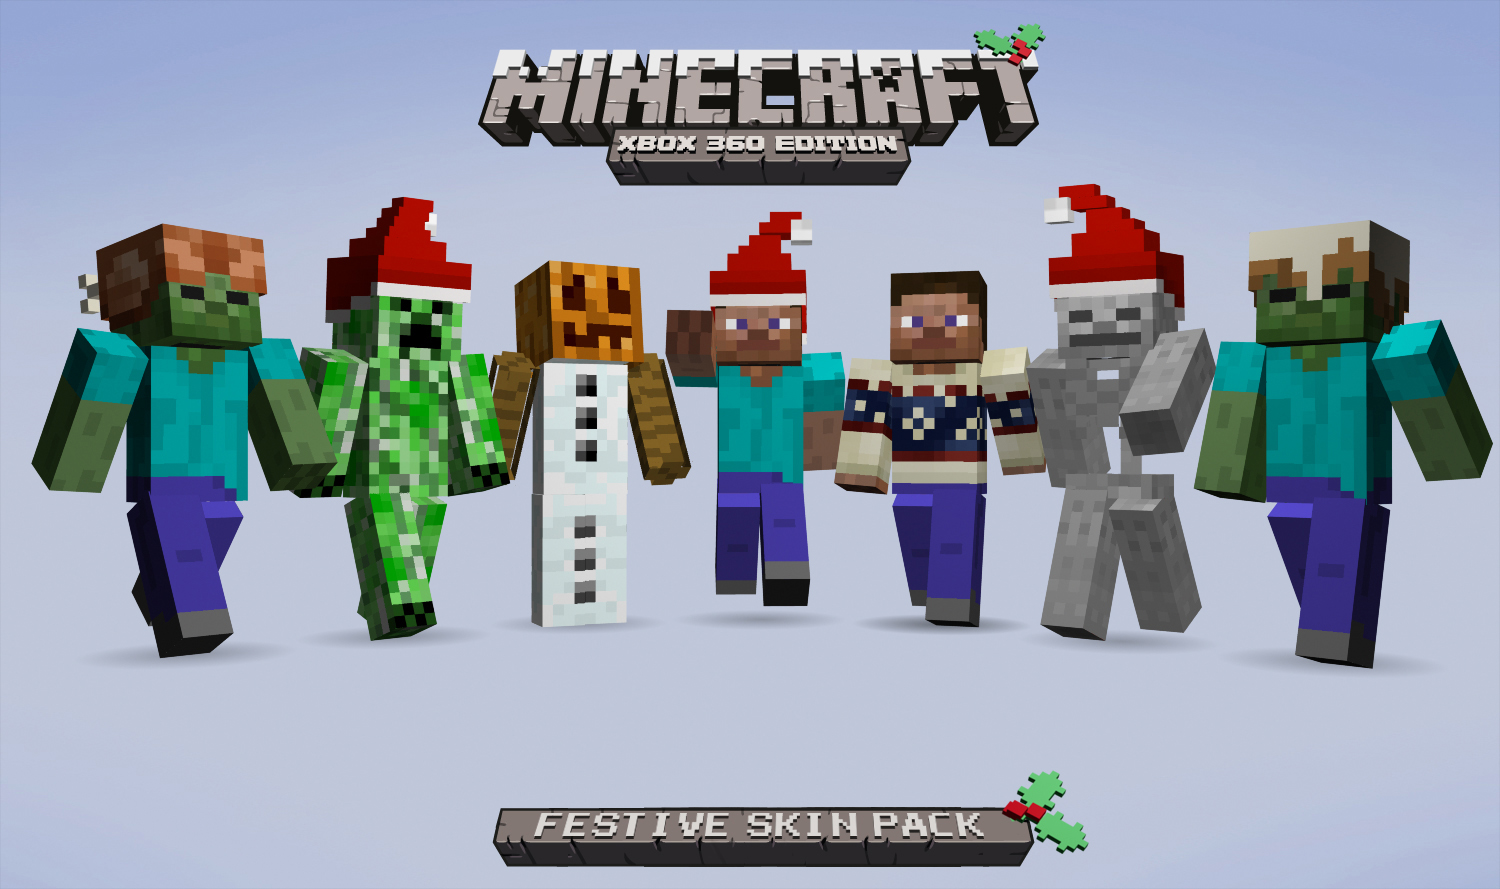 Minecraft Xbox Edition Festive Skin Pack On Sale - Skins minecraft baixar gratis